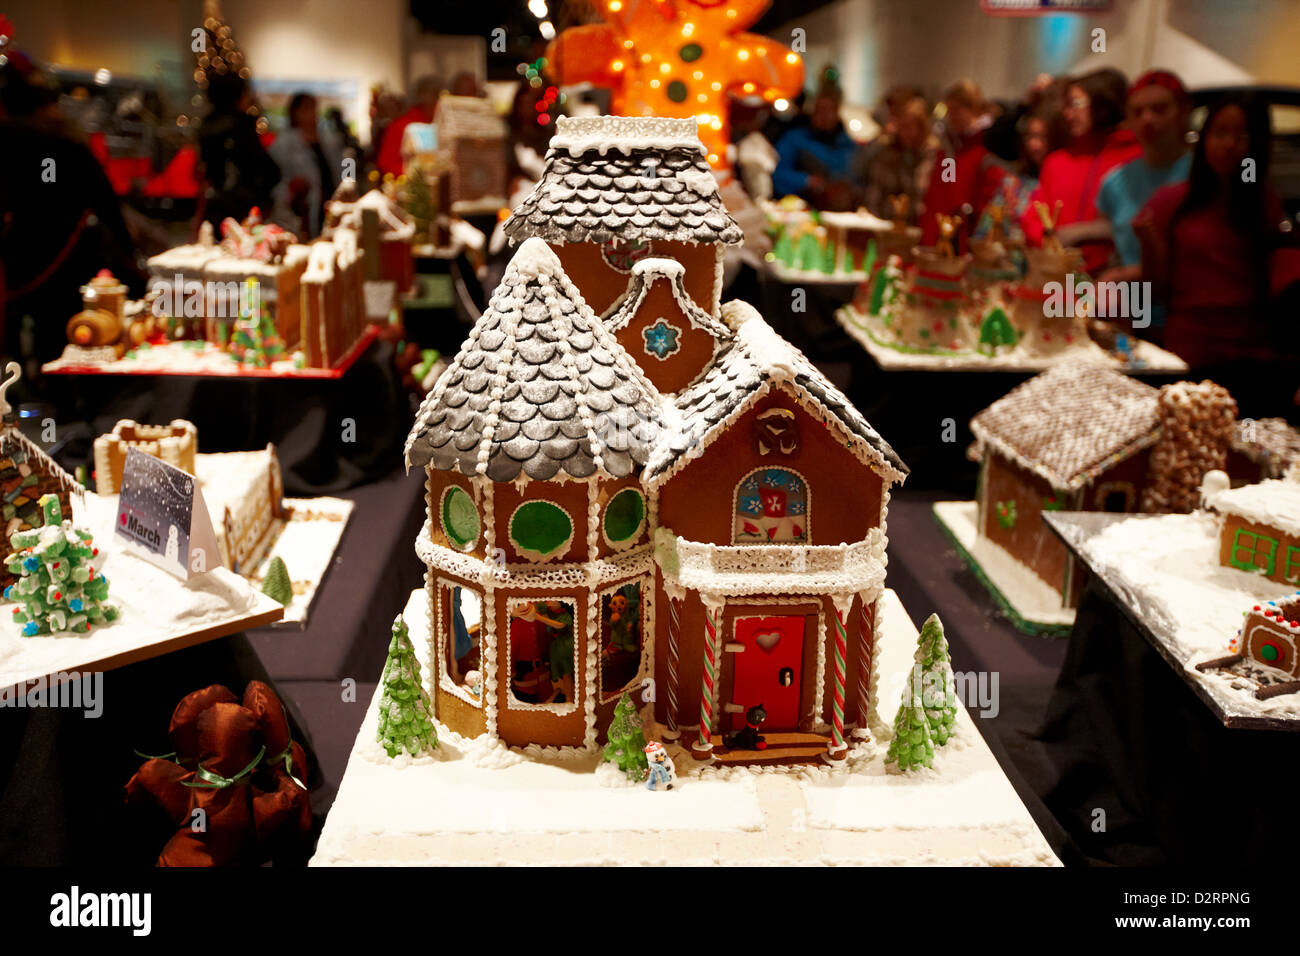 Gingerbread house charity display at the western development museum saskatoon saskatchewan canada stock image